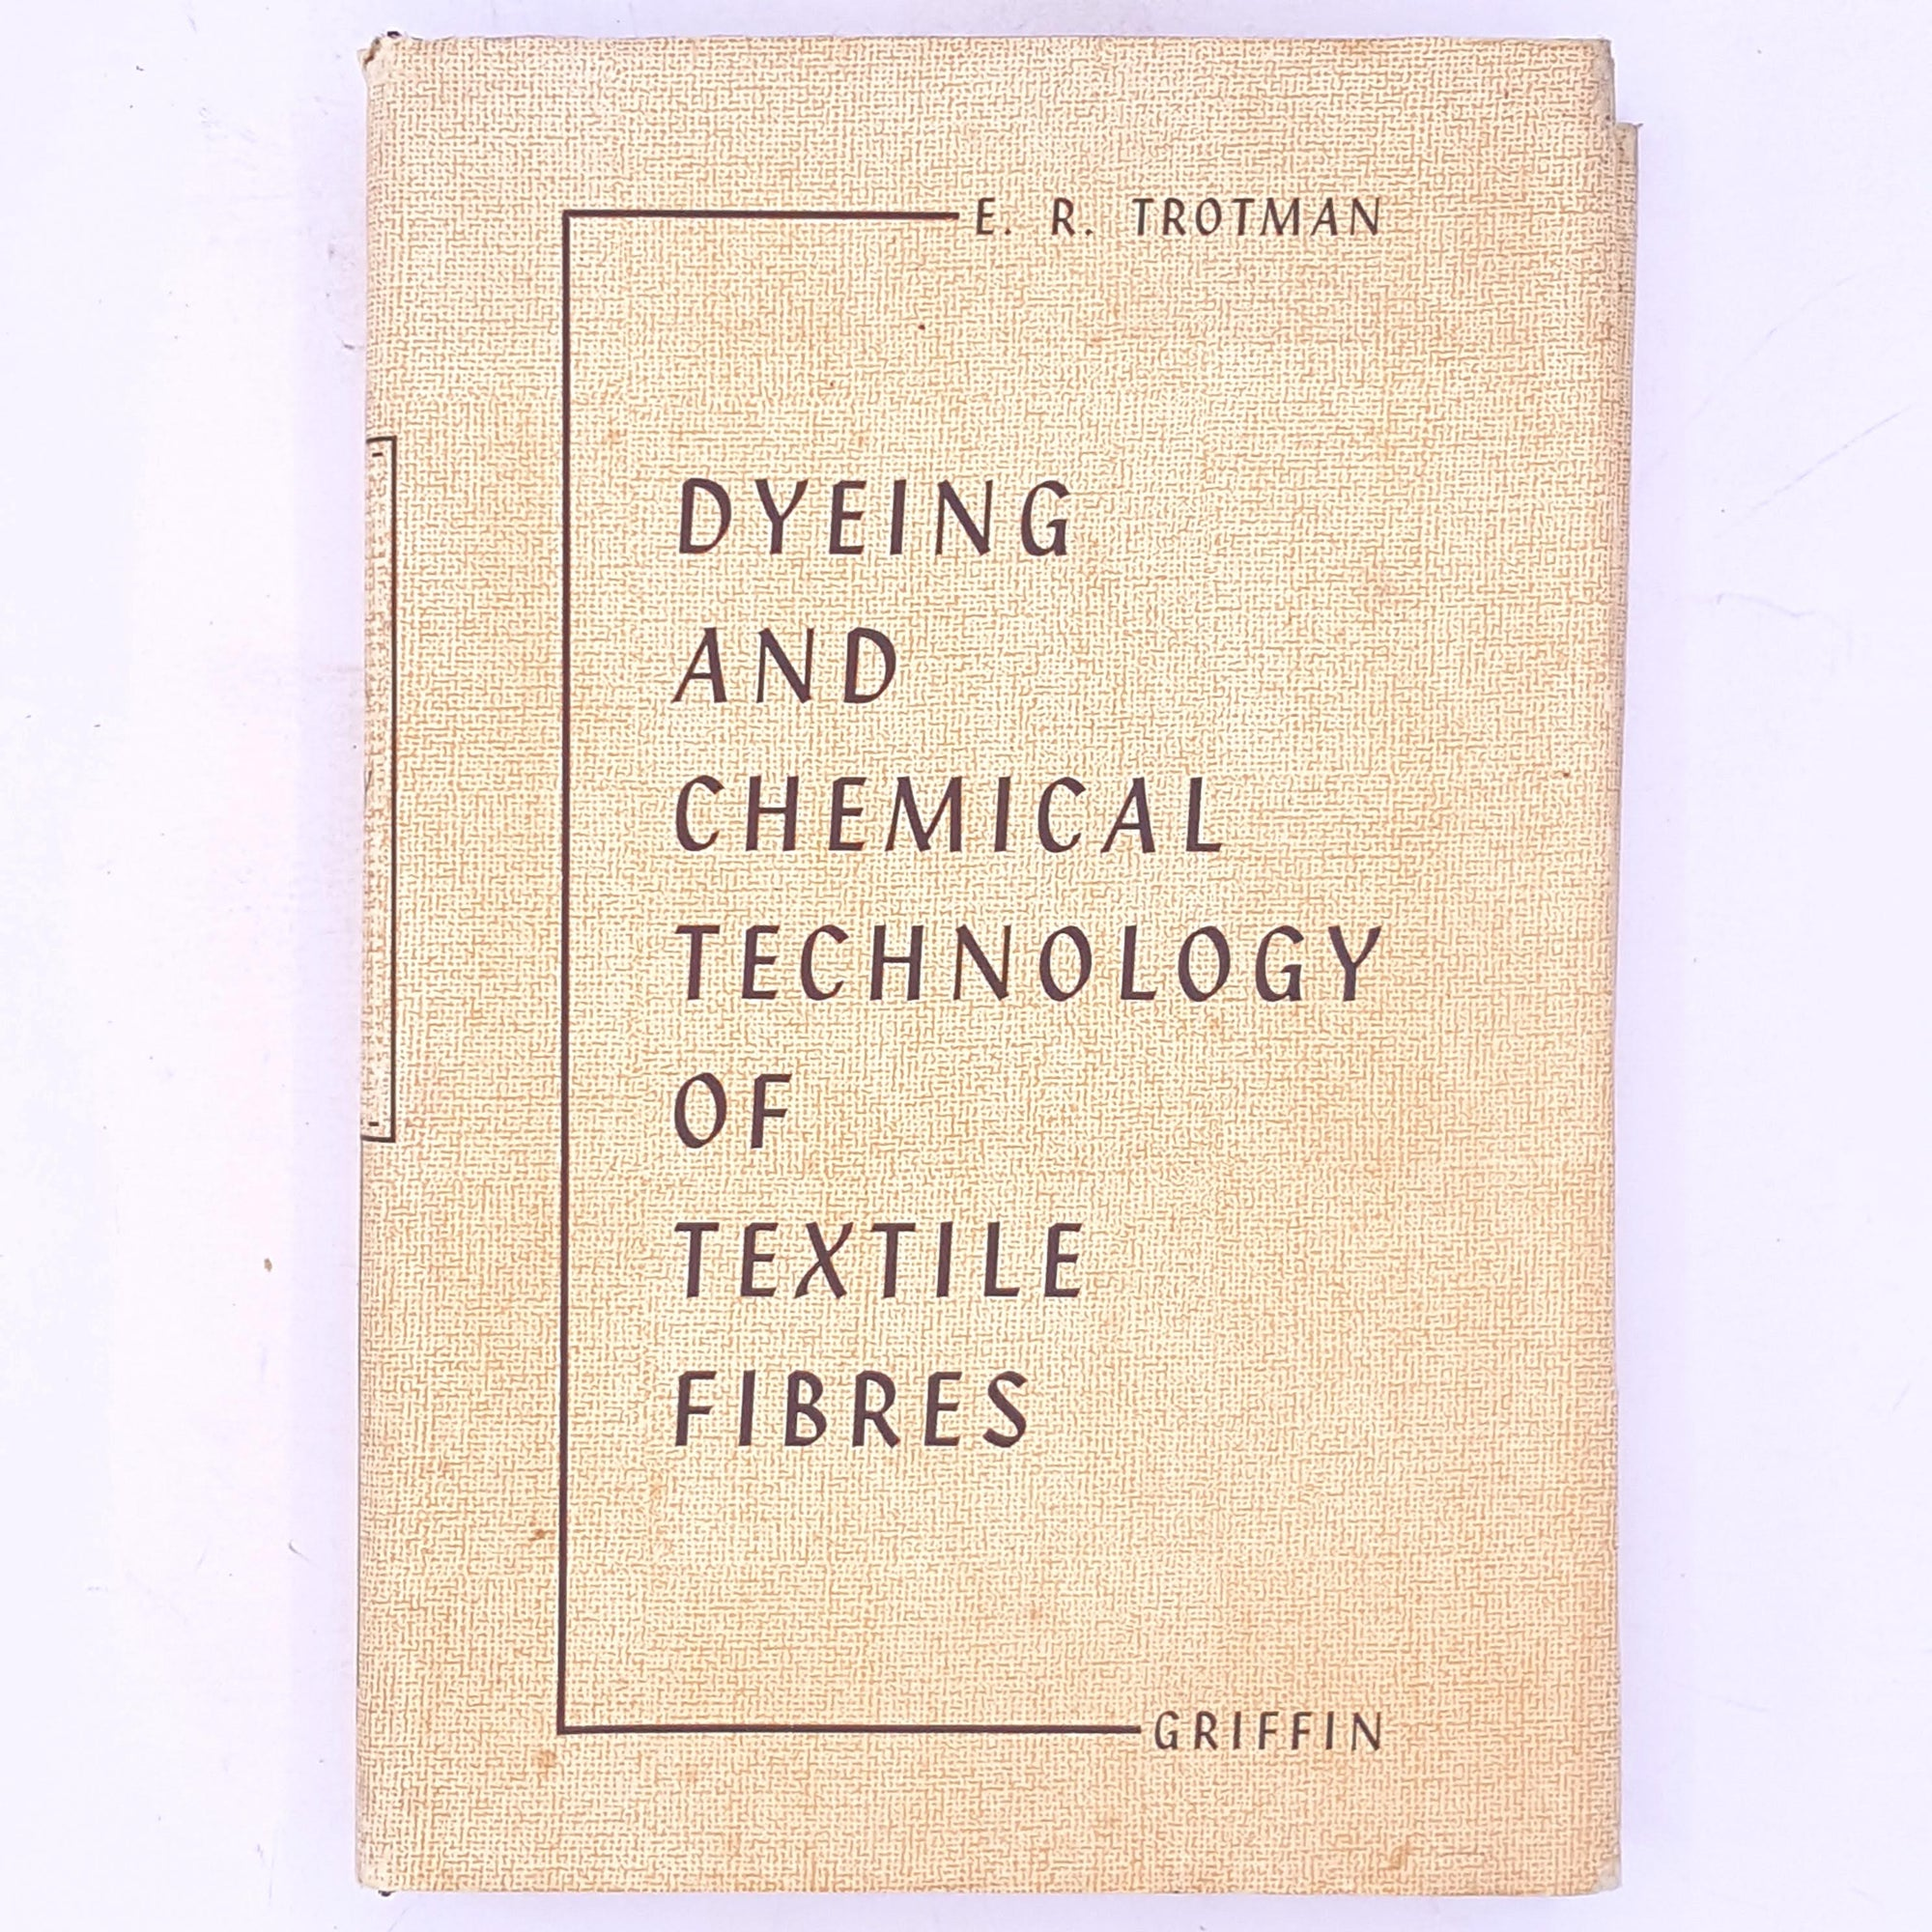 patterned-vintage-Dyeing-and-Chemical-Technology-of-Textile-Fibres-by-E.R.-Trotman-antique-thrift-classic-decorative-old-fashion-textiles-dyeing-chemical-technology-textiles-clothing-books-country-house-library-